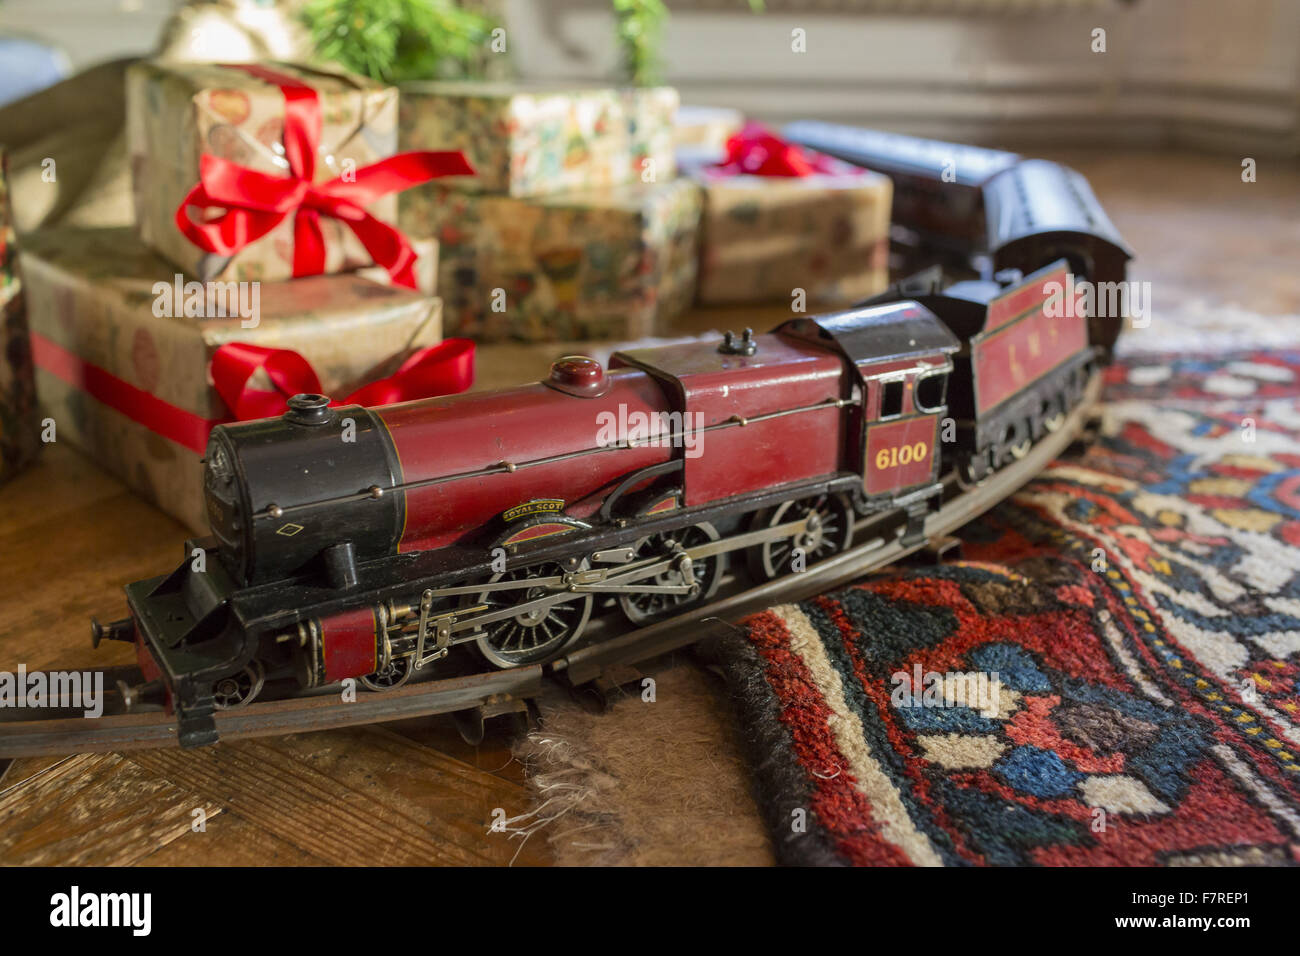 Christmas Model Railway.Christmas Gifts And A Model Train On A Circular Track On